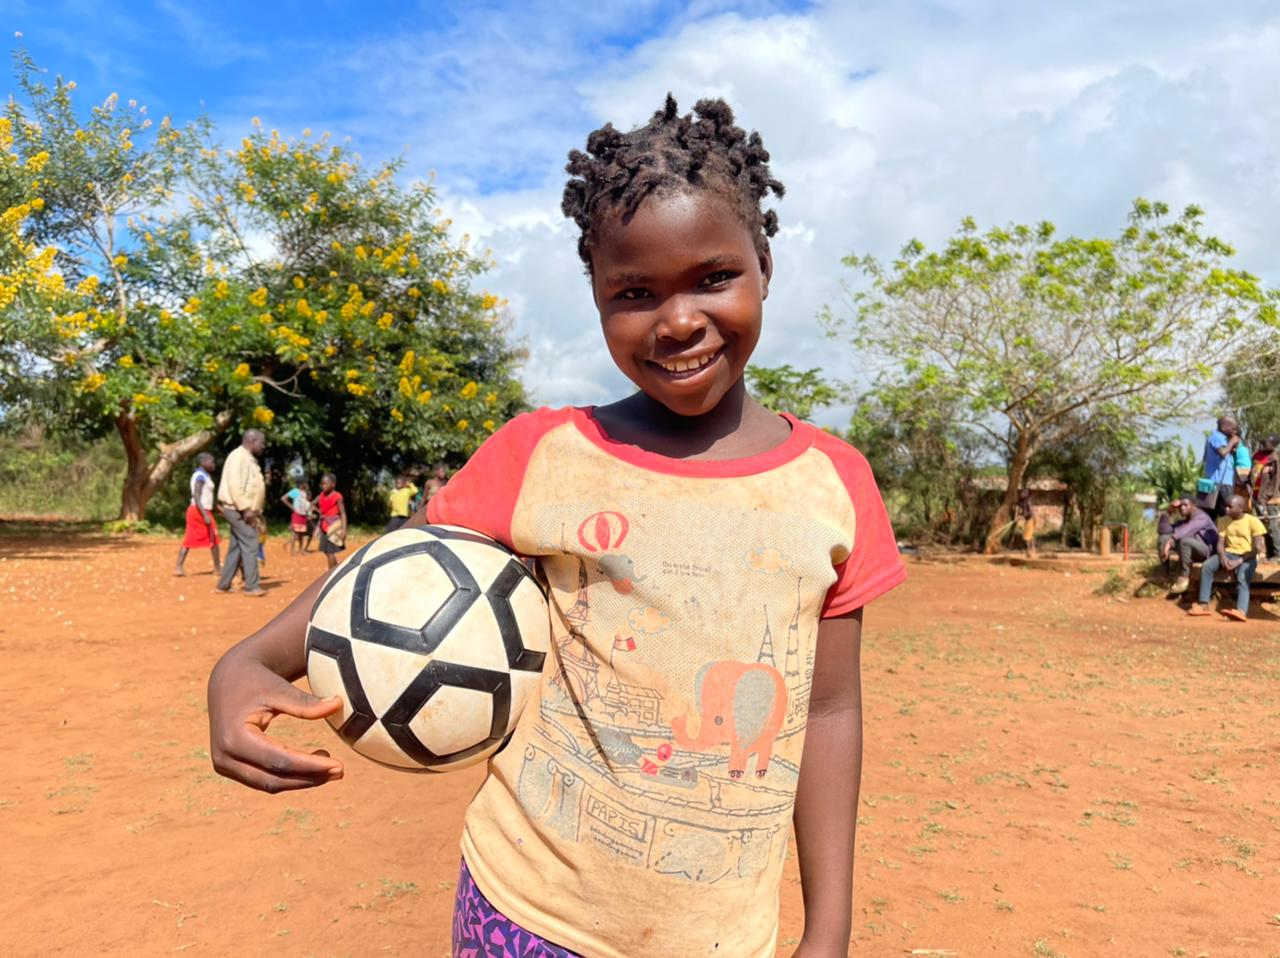 11 year old Maria - student at Marera primary school, Mozambique and member of the girls club